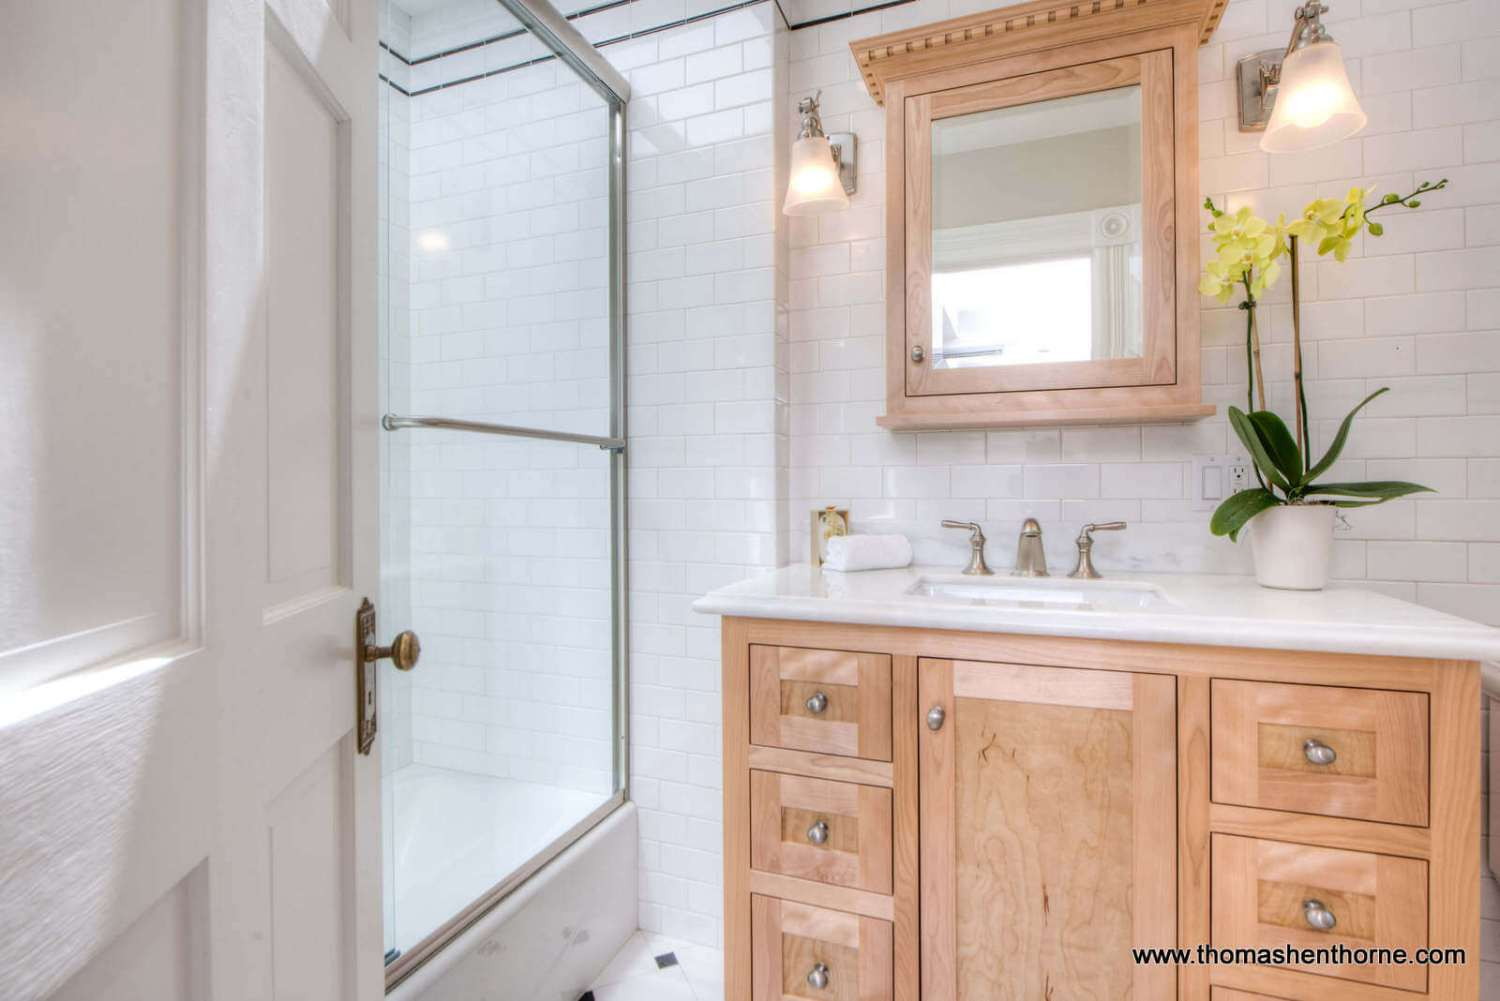 photo of door opening into bathroom with white tile